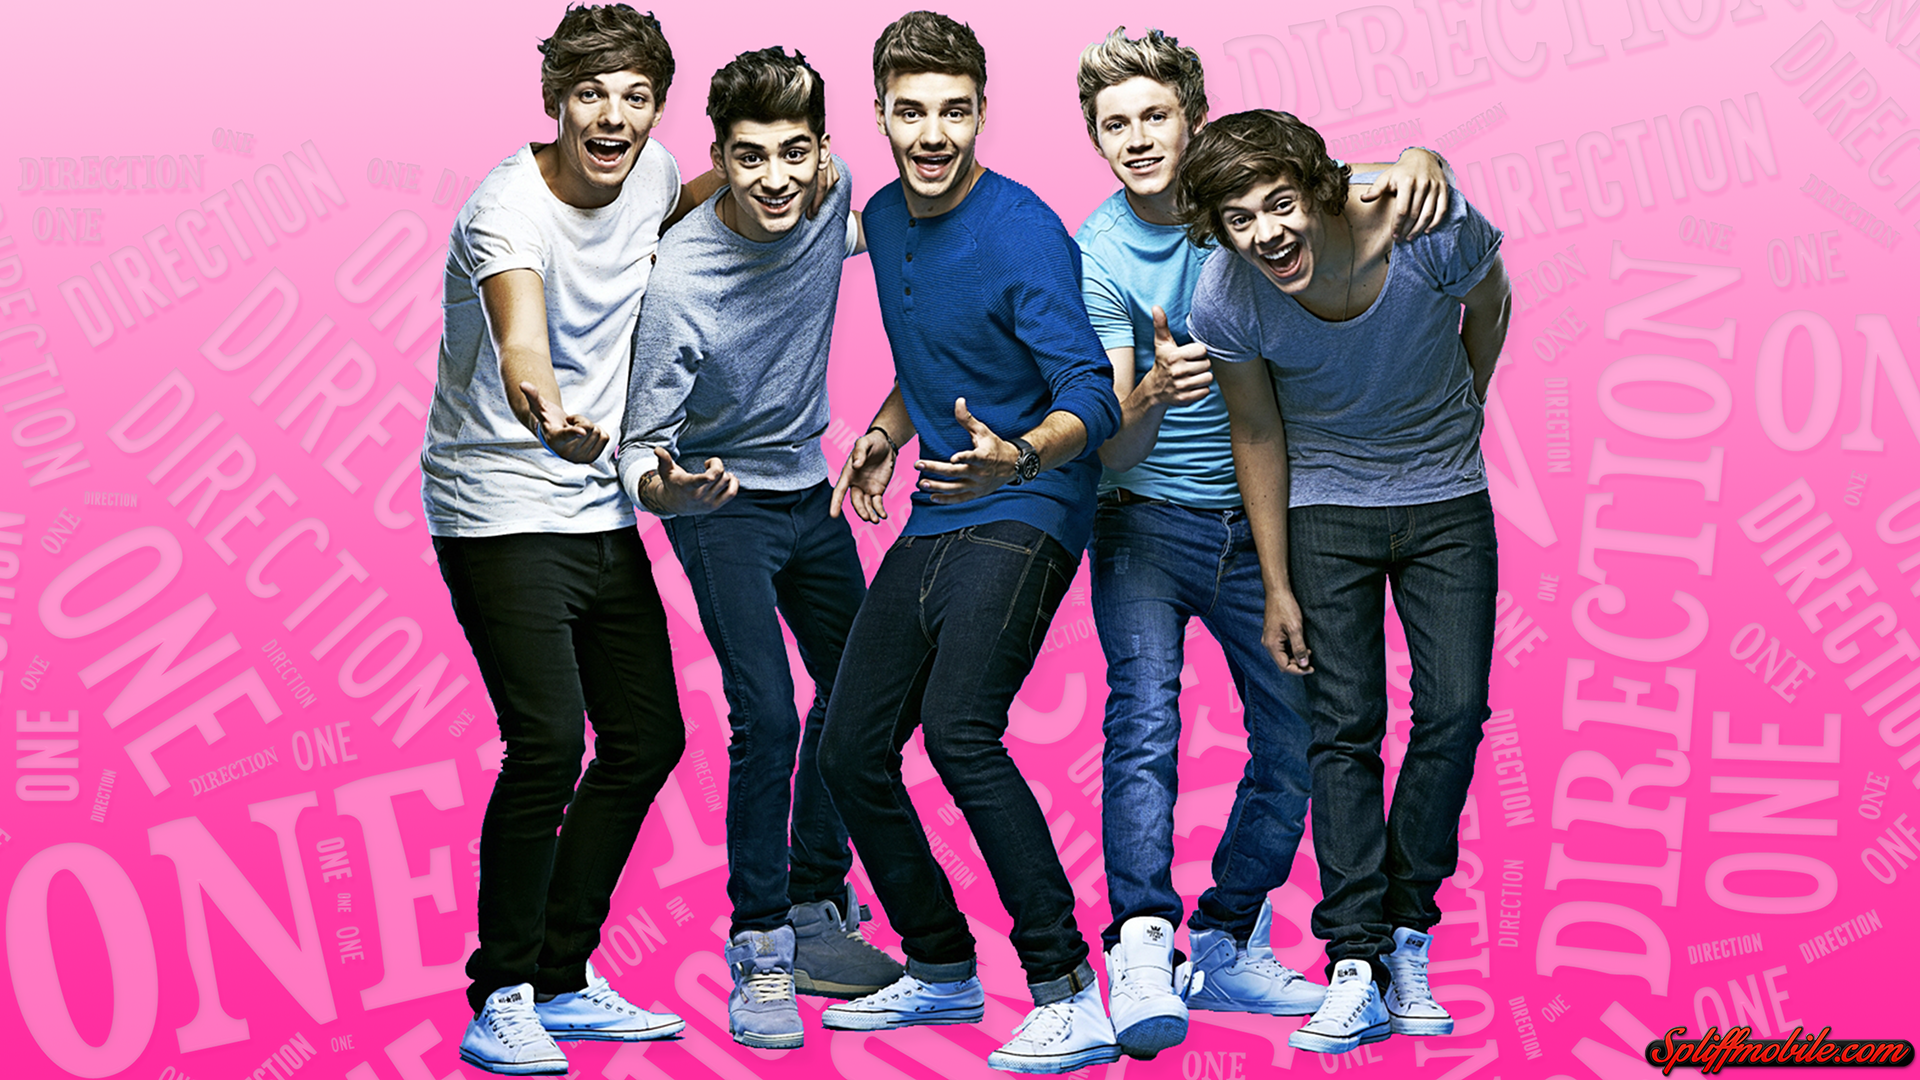 HD One Direction Wallpaper 1920x1080